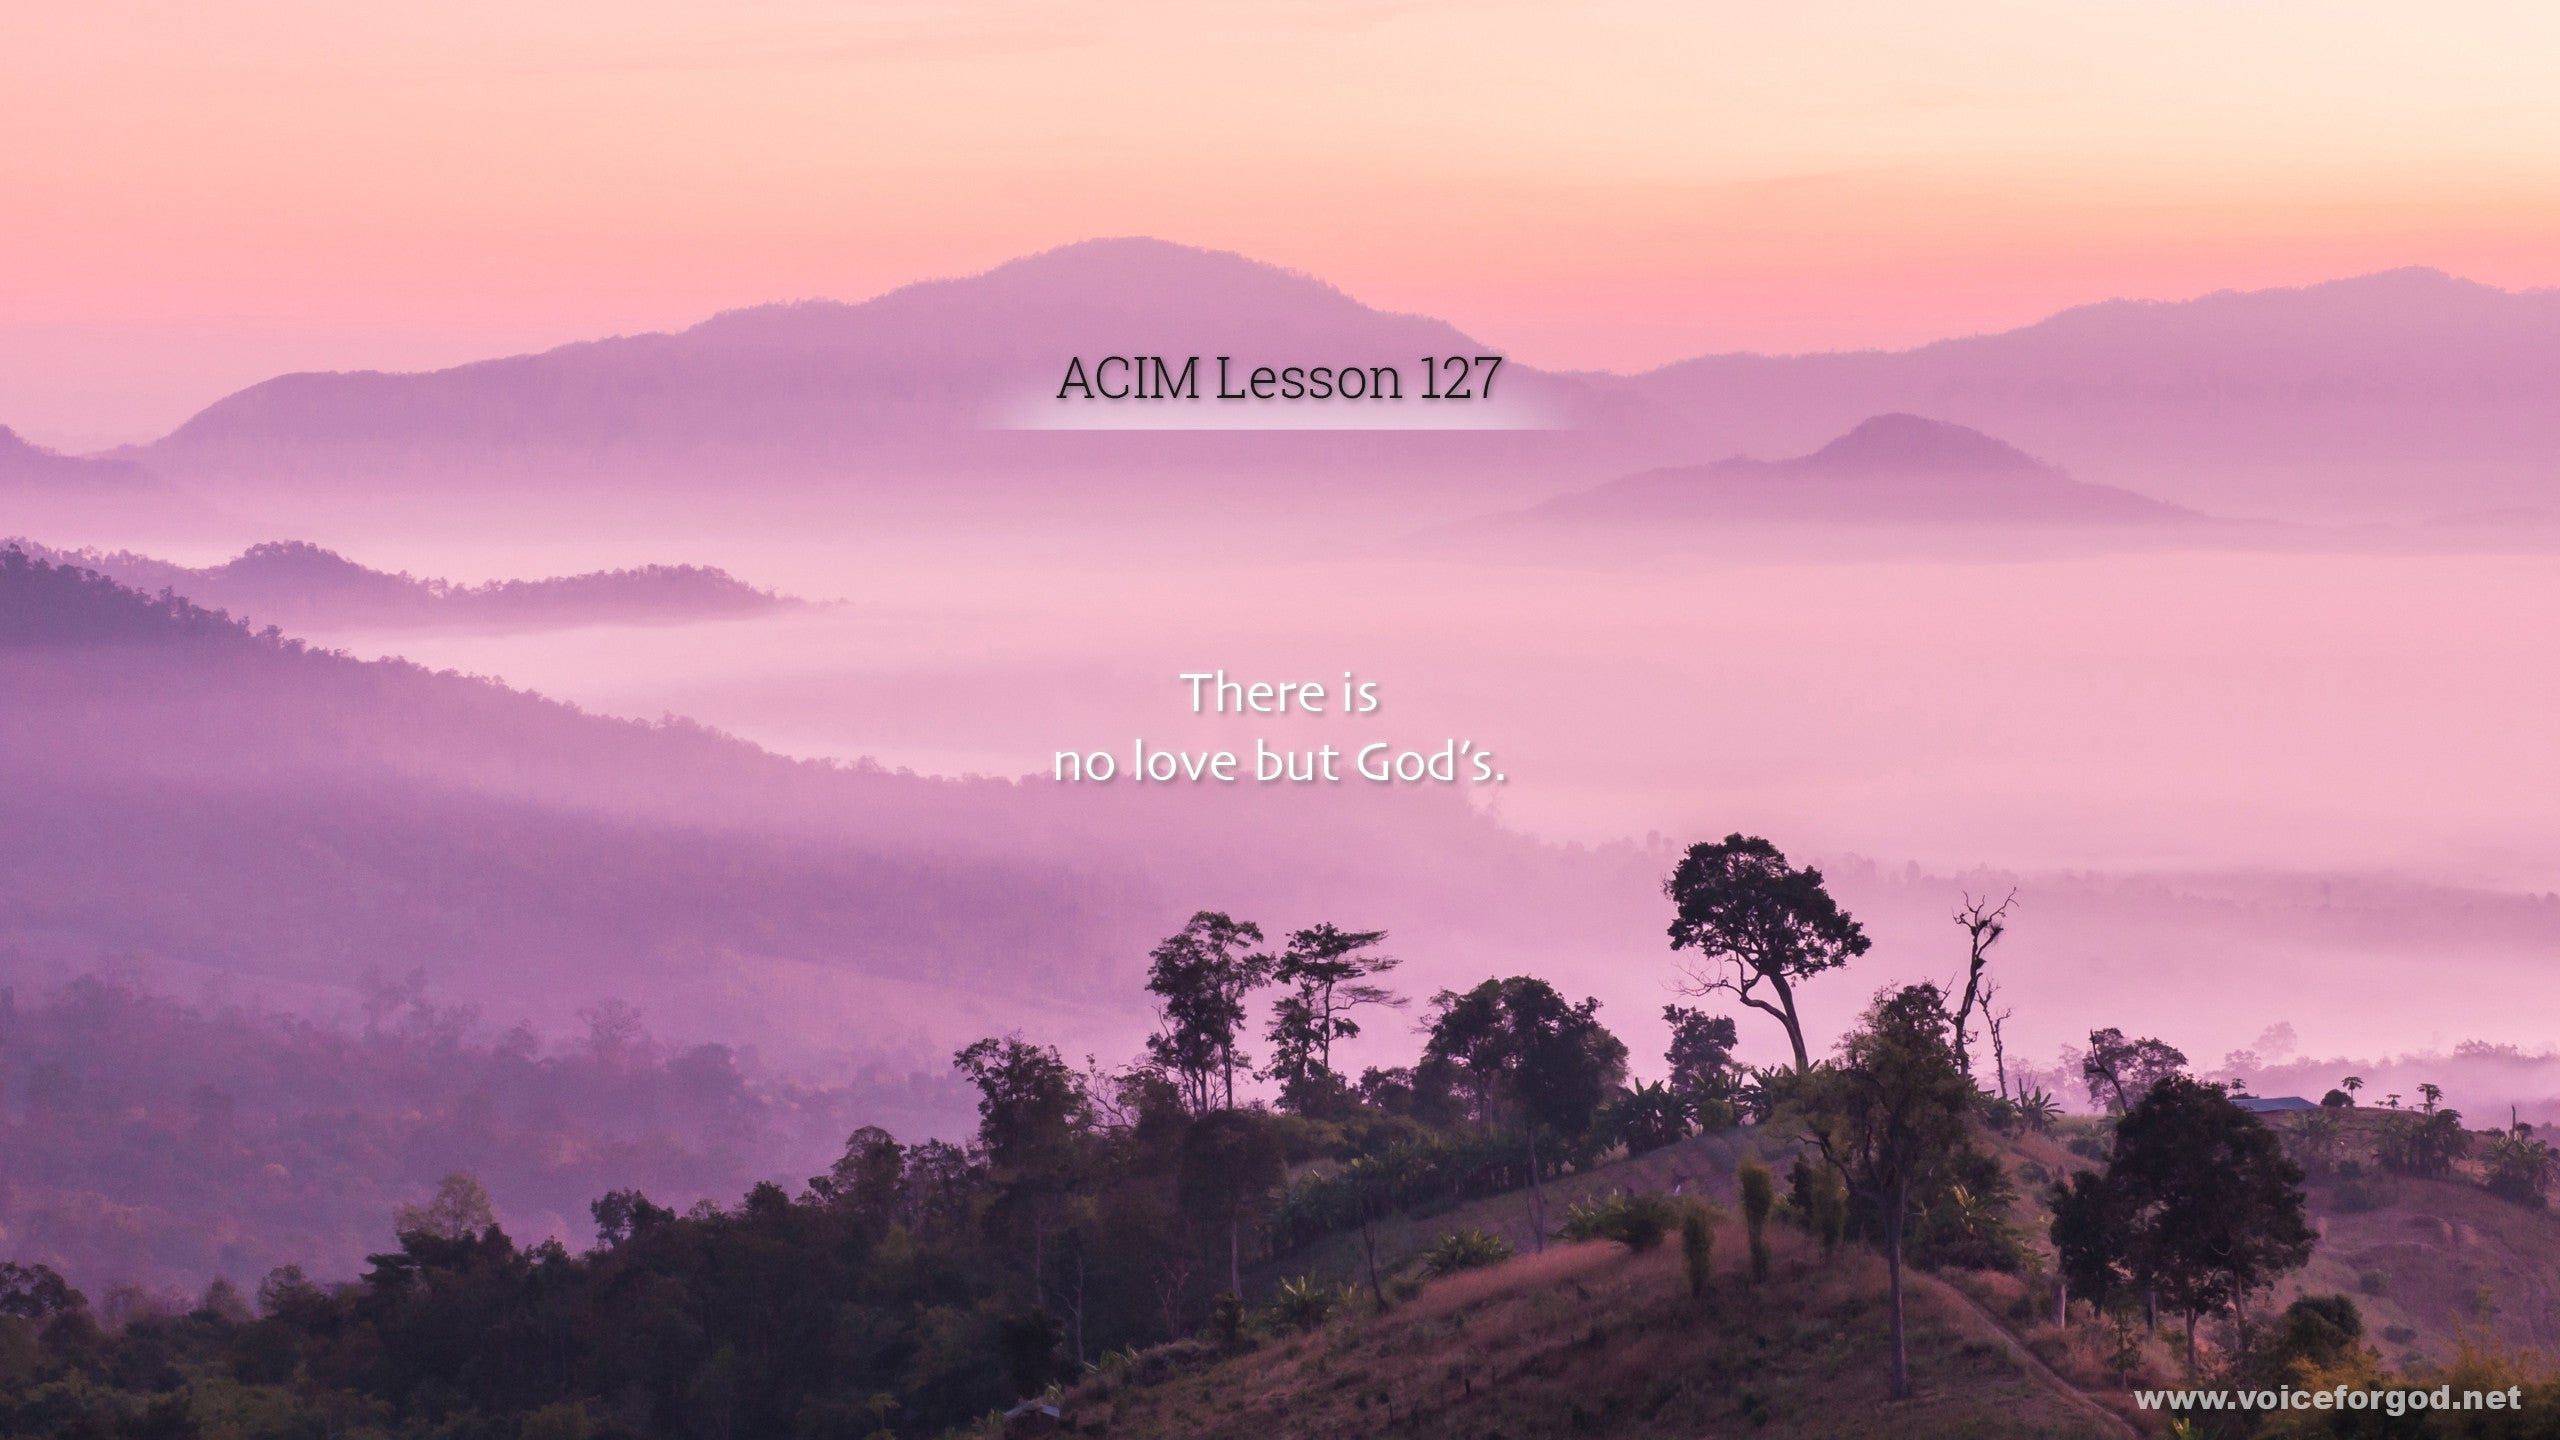 ACIM Lesson 127 - A Course in Miracles Workbook Lesson 127